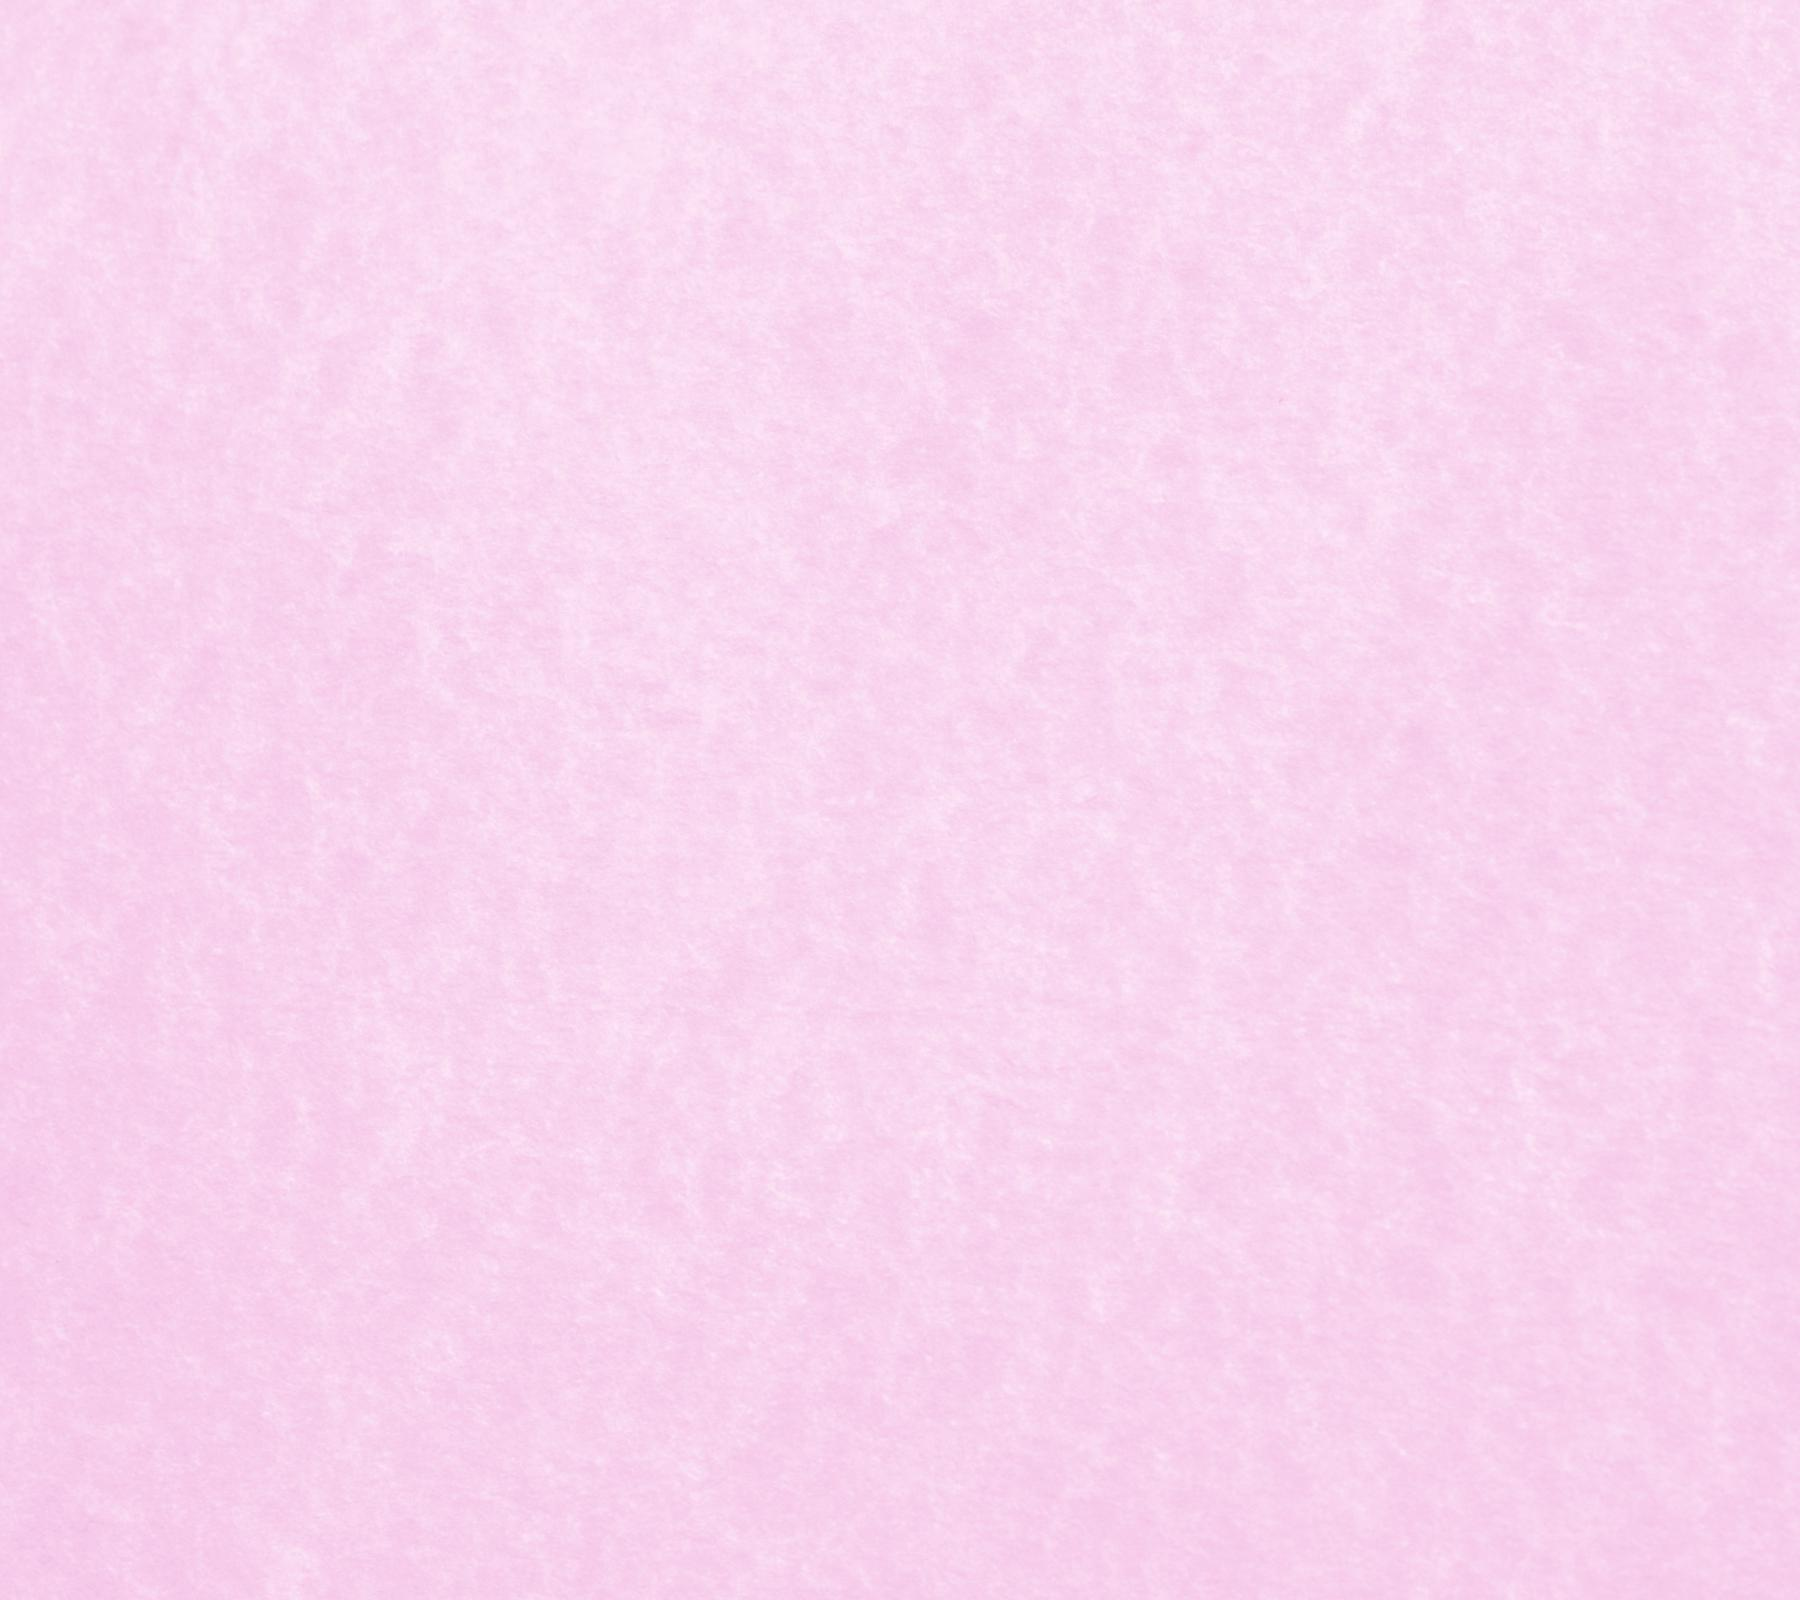 Graduation Background Pink - #traffic-club